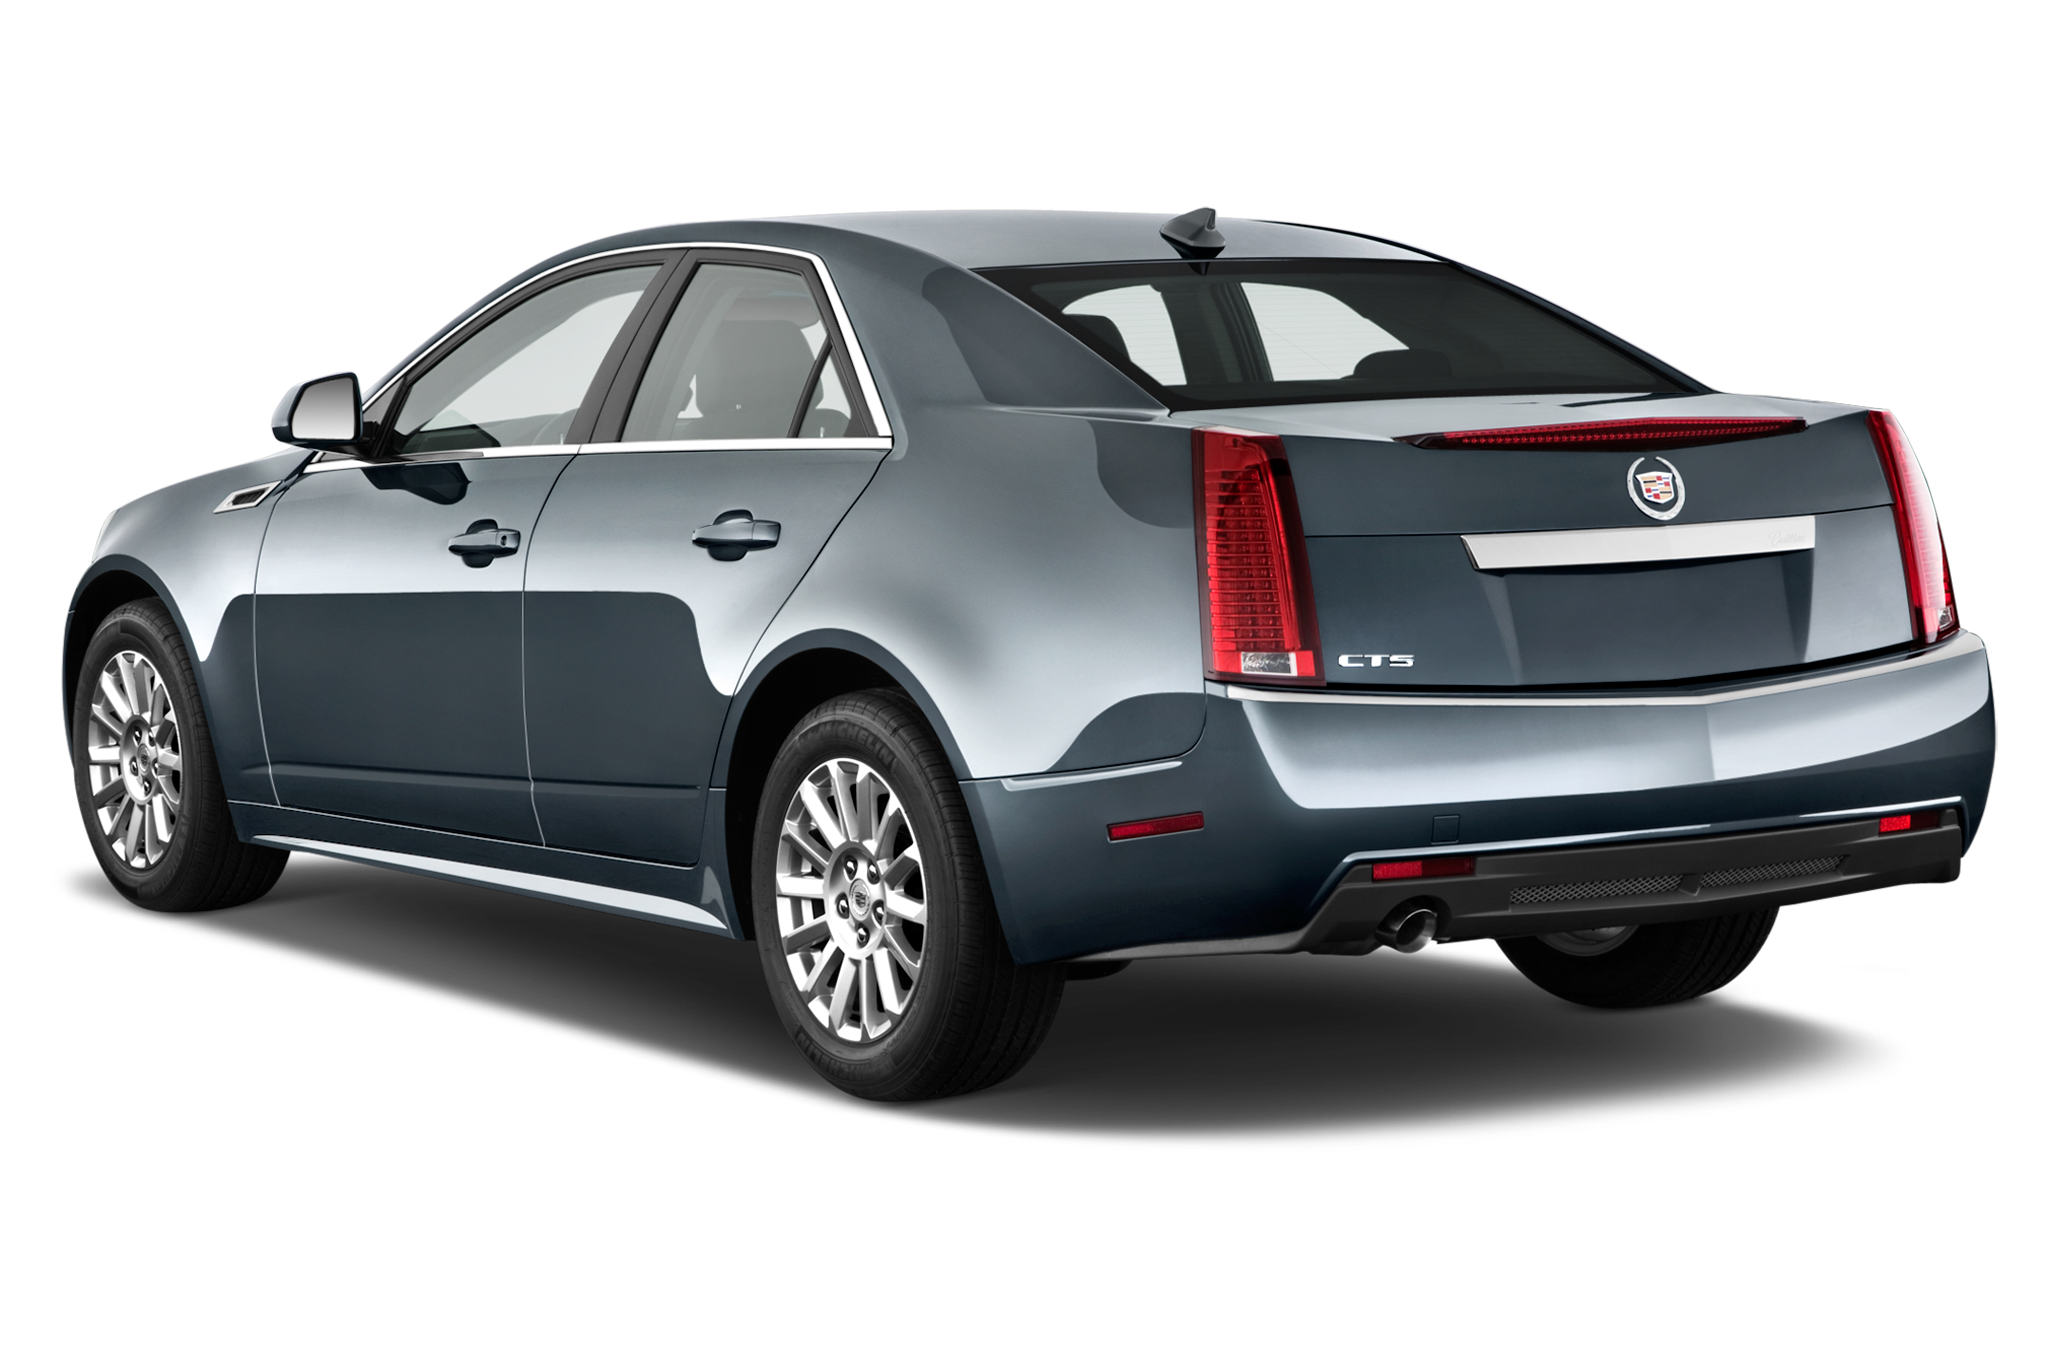 2015 Cts V Coupe Wiring Diagrams together with 1959 Cadillac Convertible Top Wiring Diagram besides 2016 Cadillac Ats V further 1959 Cadillac Eldorado Seville Sale Wiring Diagram further 2016 Cadillac Ct6 Looks Great Outside Falters Inside 1420680171783. on cadilac diagram